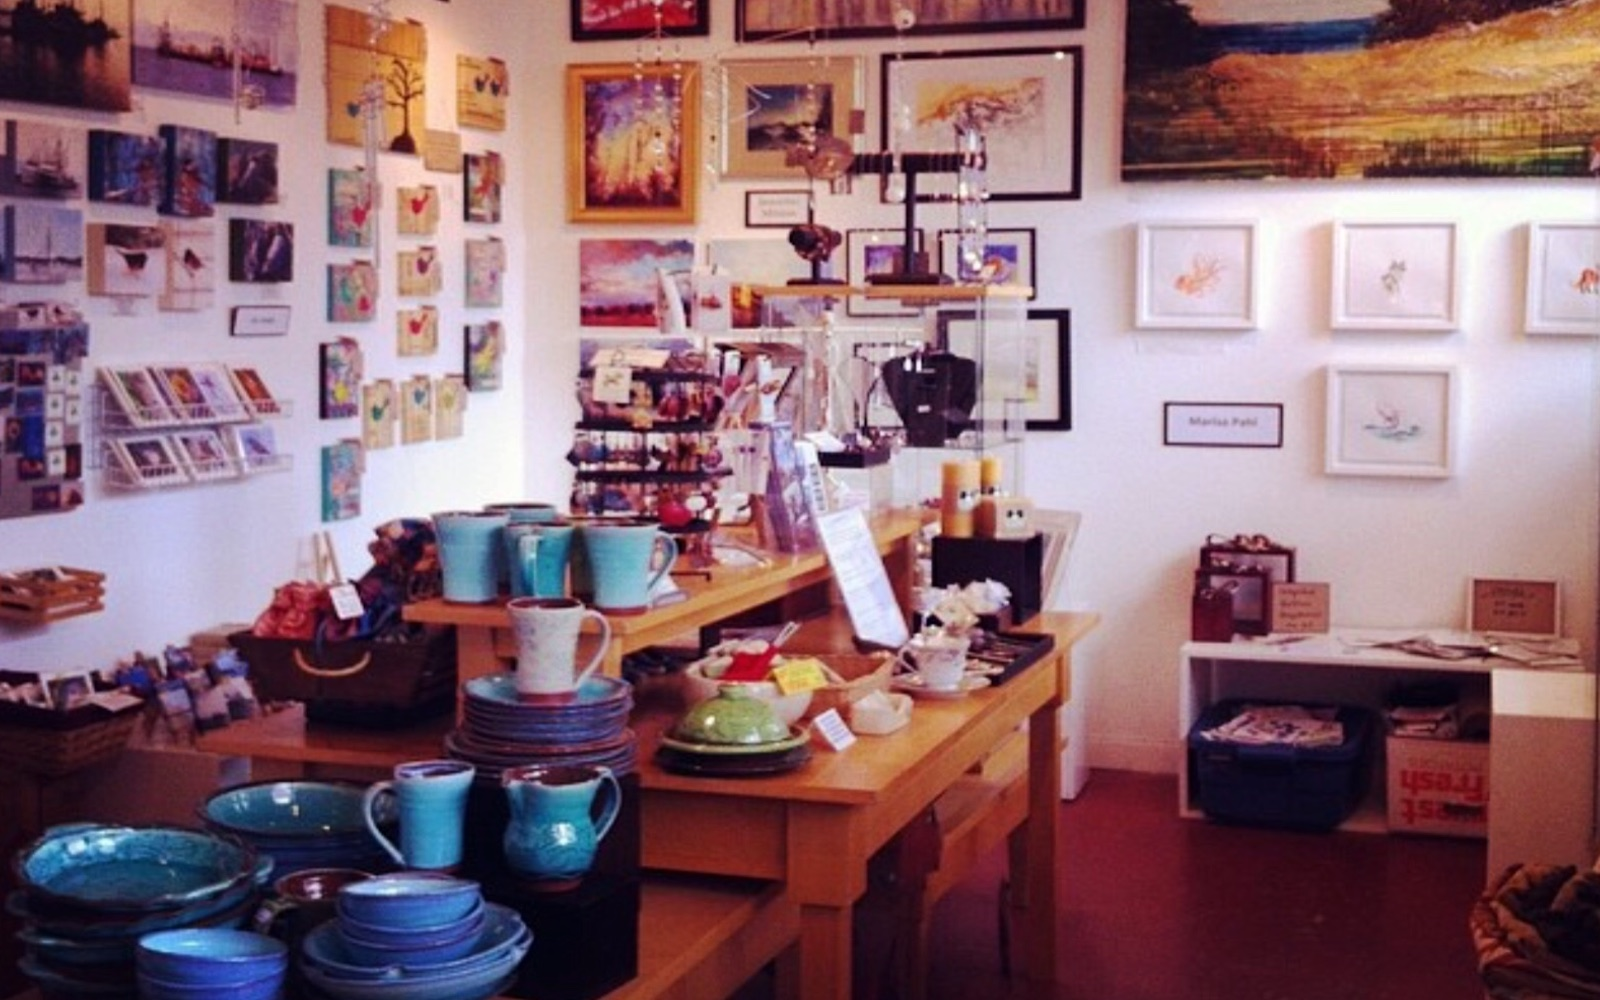 A look inside at the Arts off Main Co-op, Commercial Drive